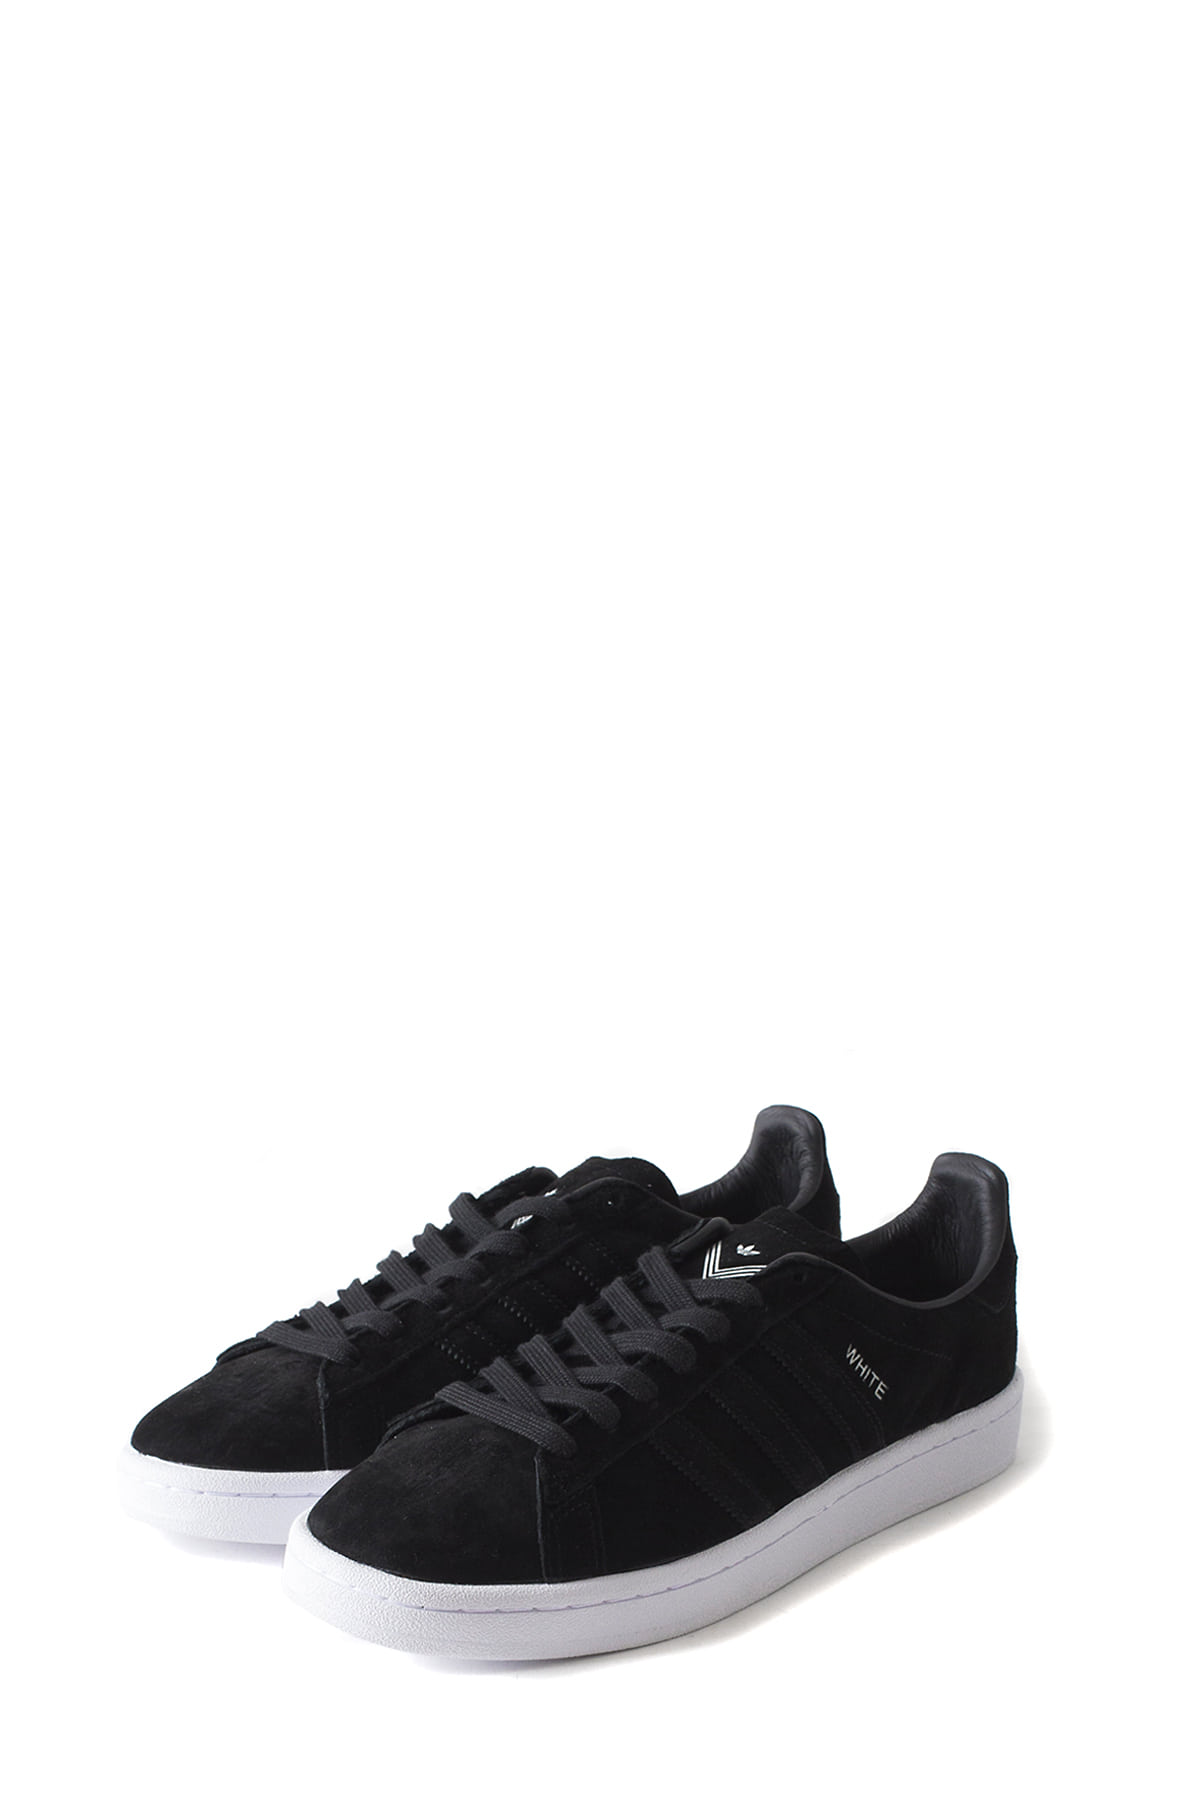 WM x adidas Originals : Campus 8 (Black)